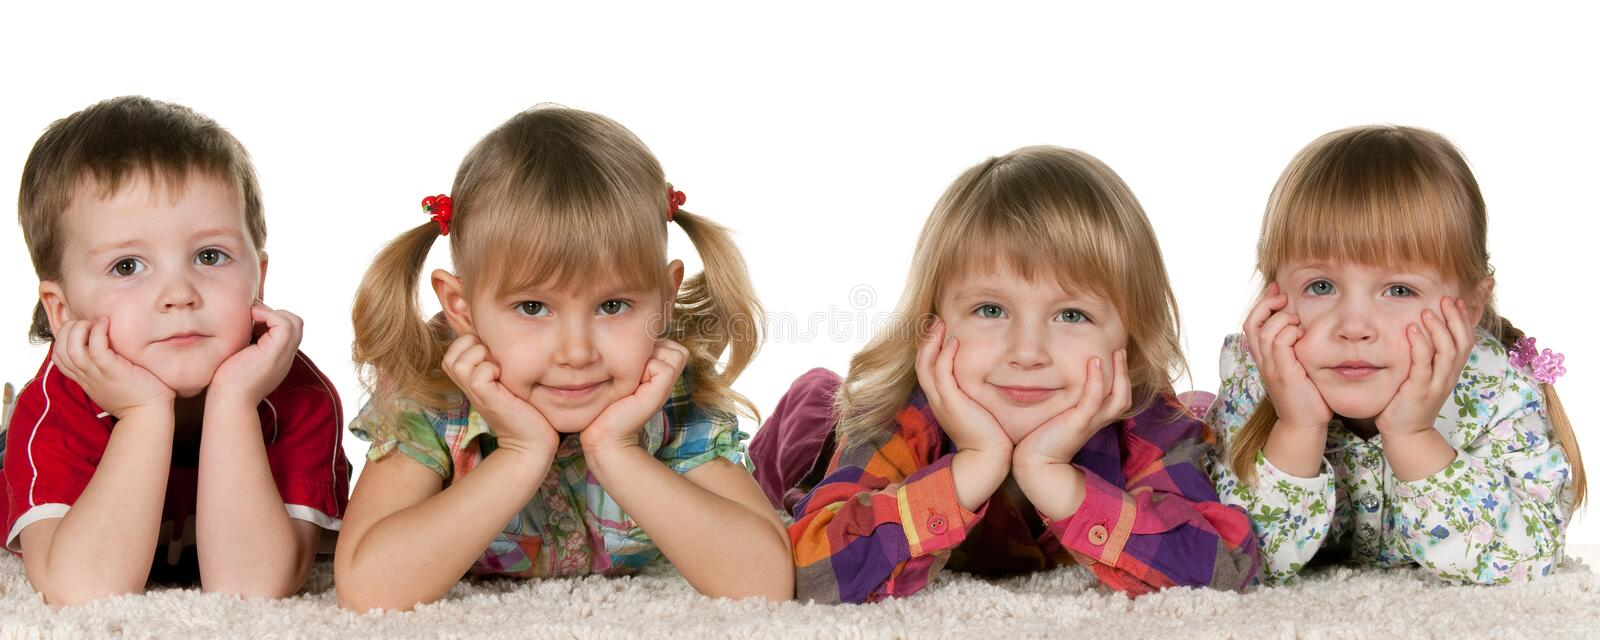 Download Four Children Lying On The Carpet Stock Image - Image: 23322521